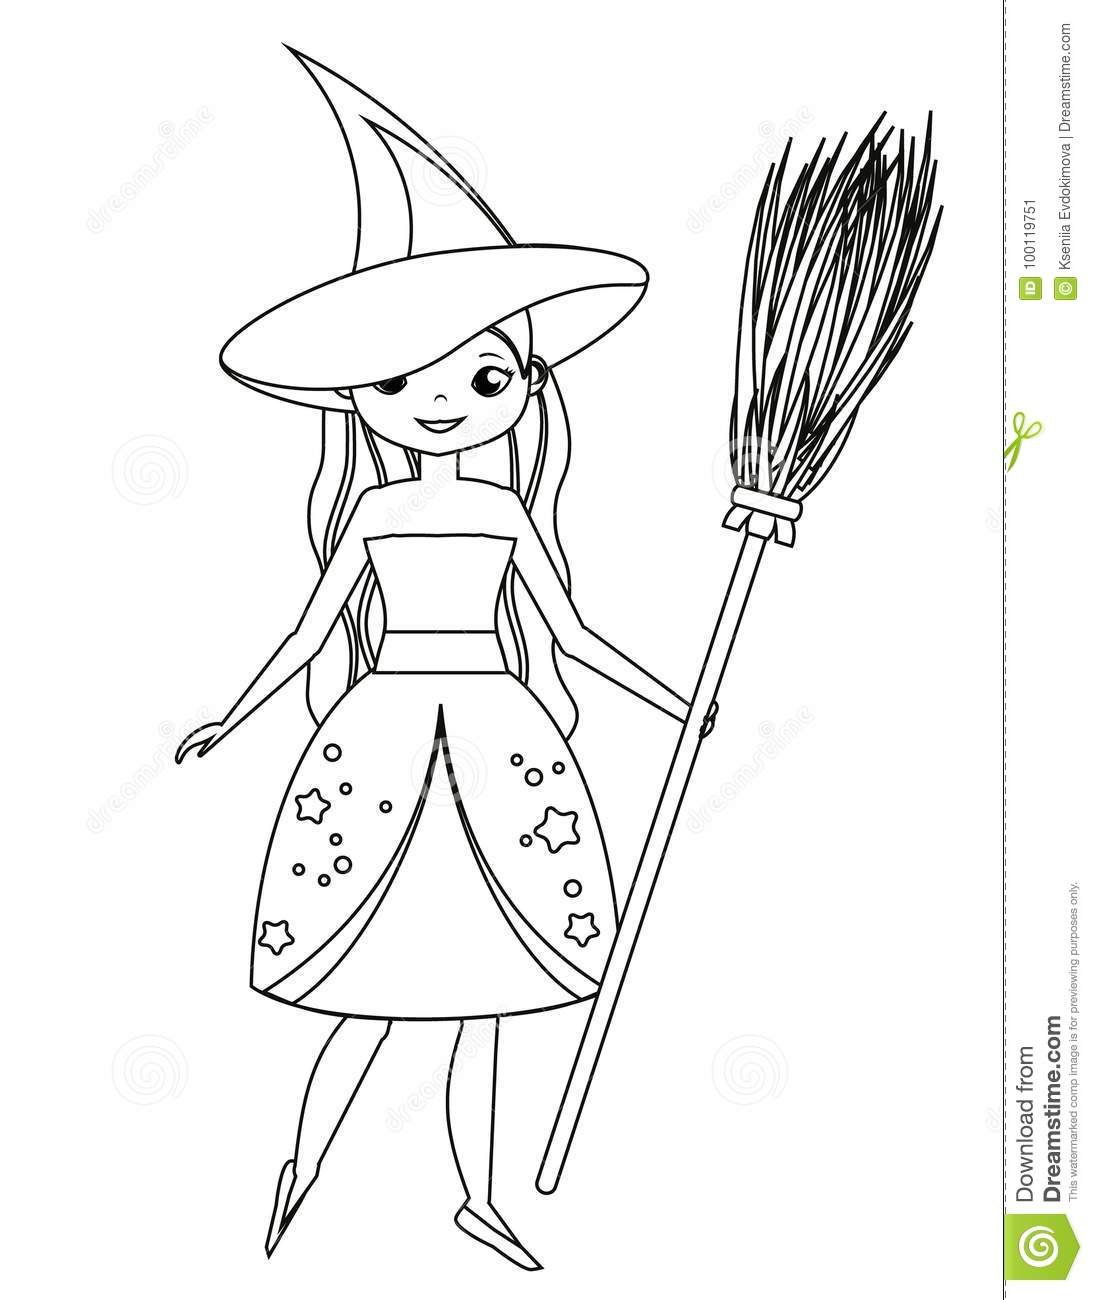 Free Printable Halloween Coloring Pages For Kids | 1300x1093